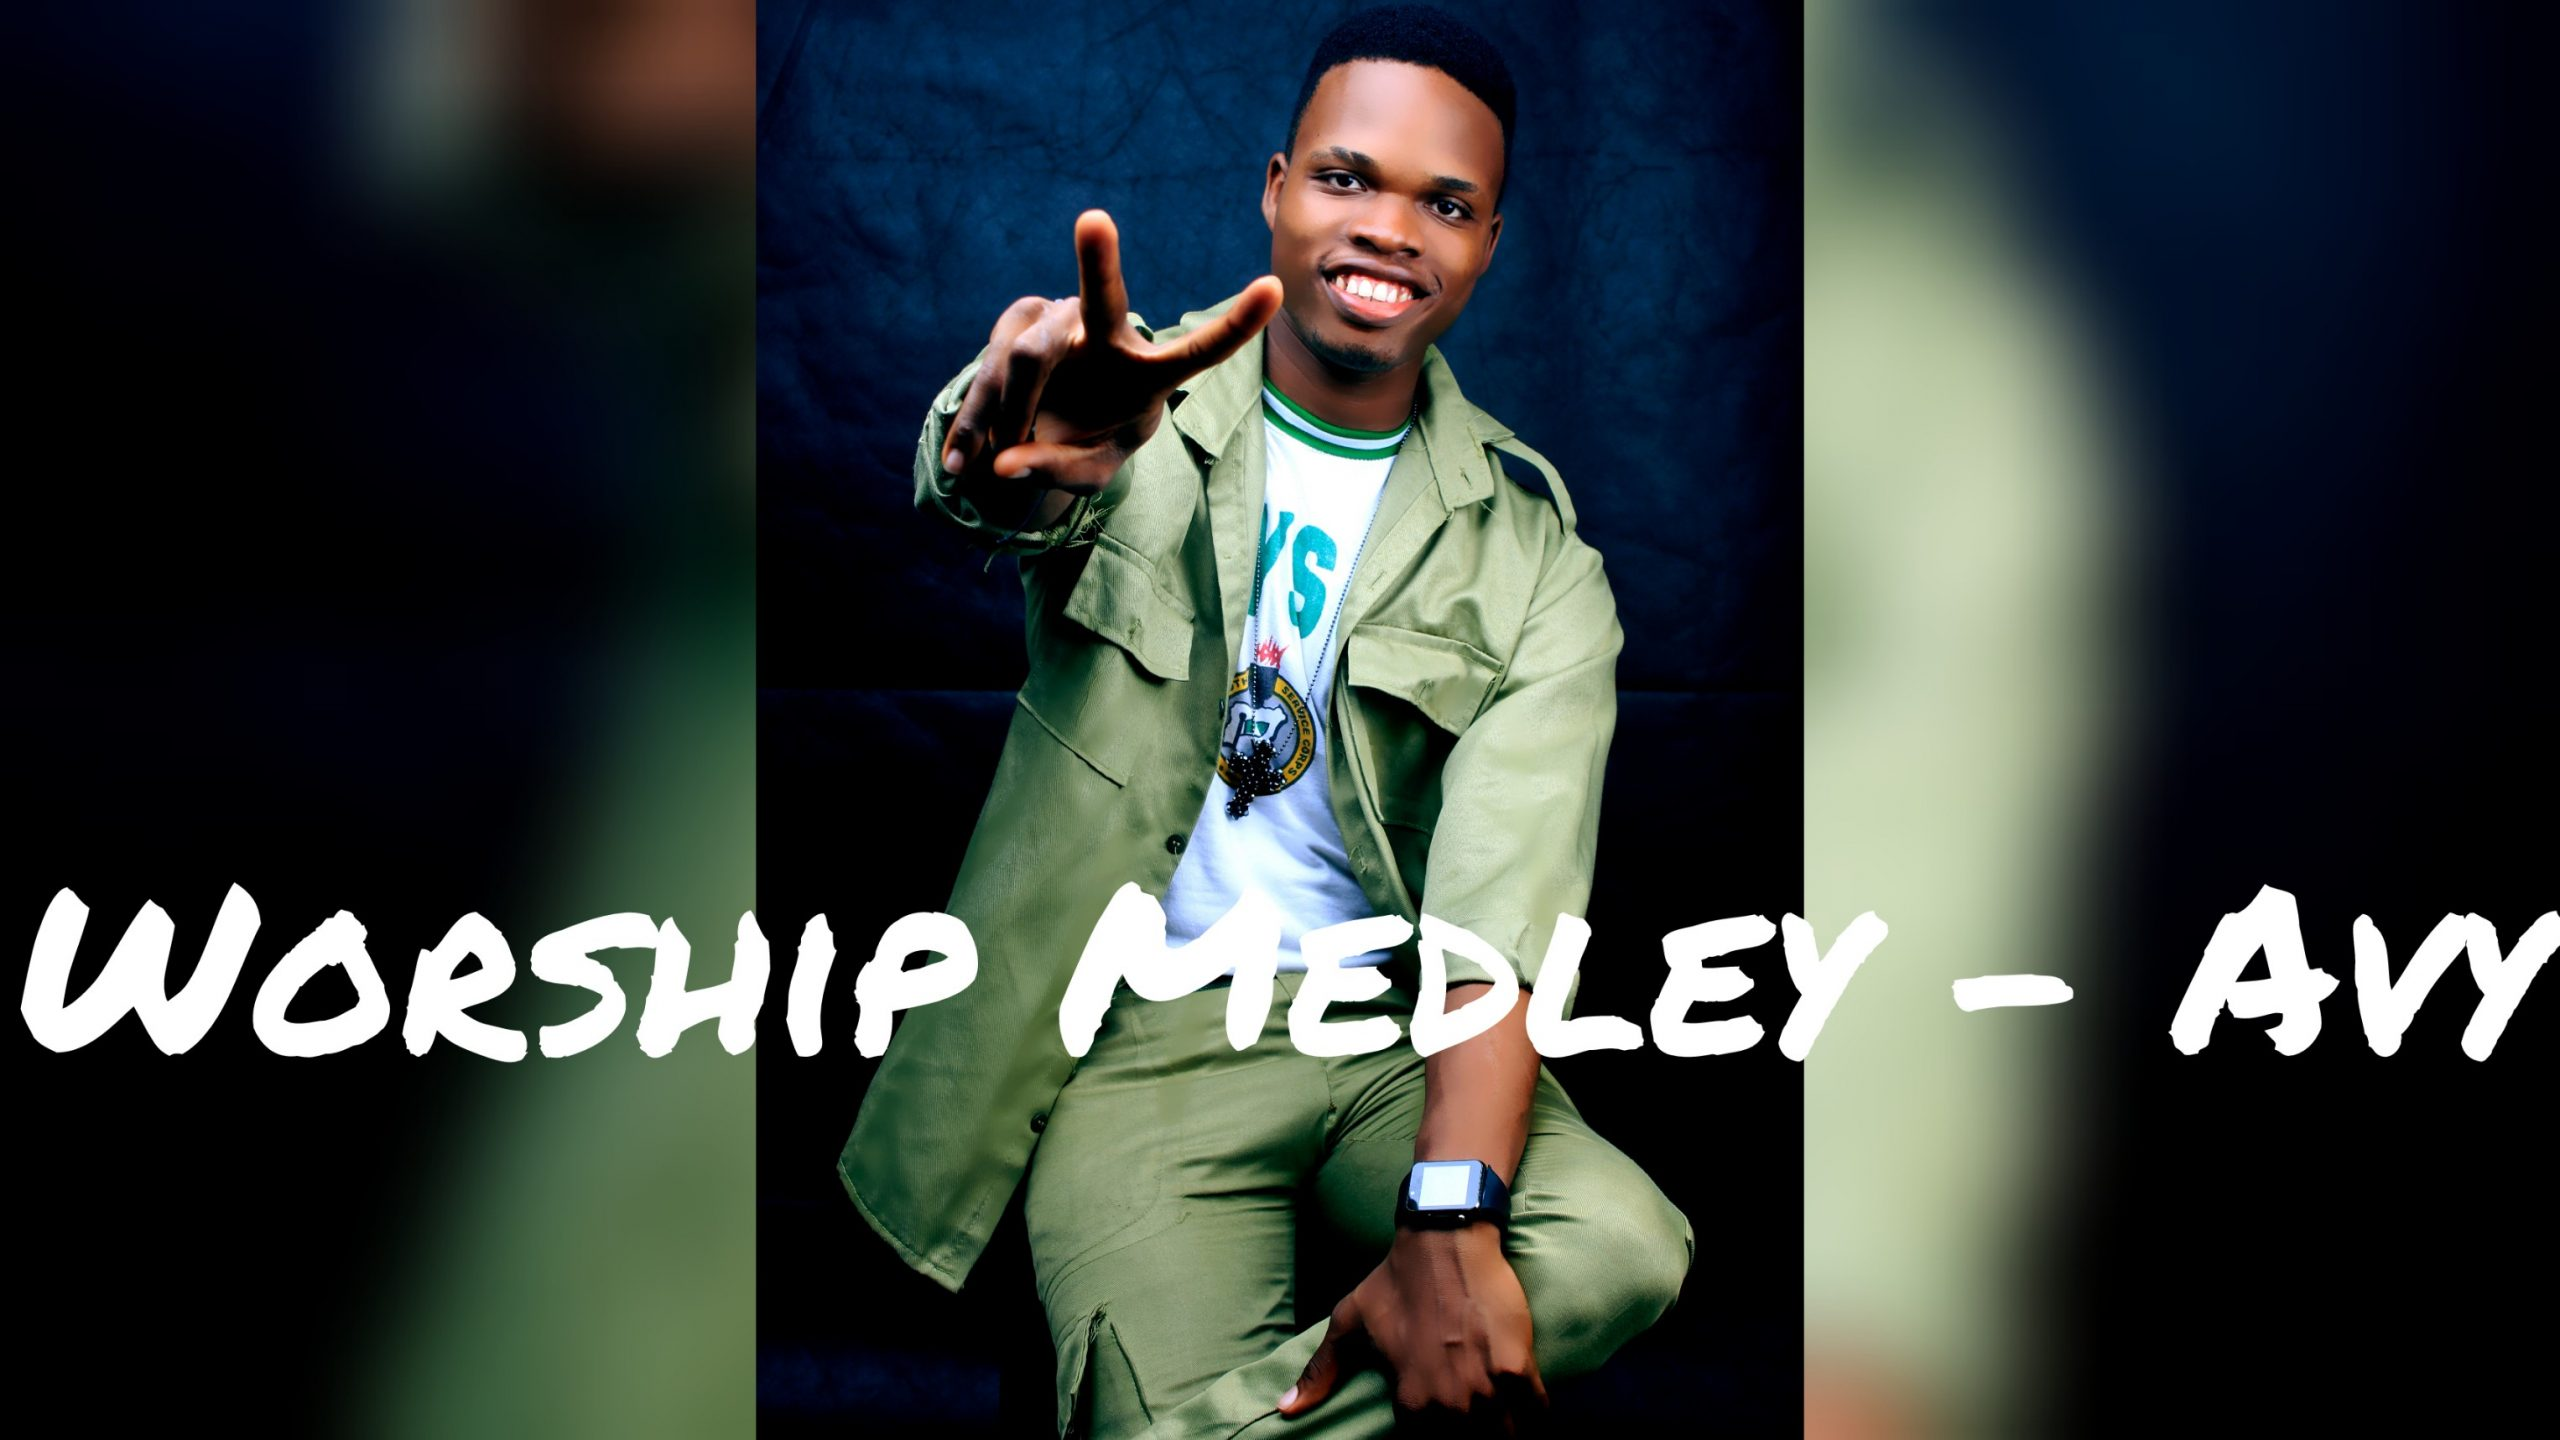 Worship Medley – Avy (Video + Mp3 Download)